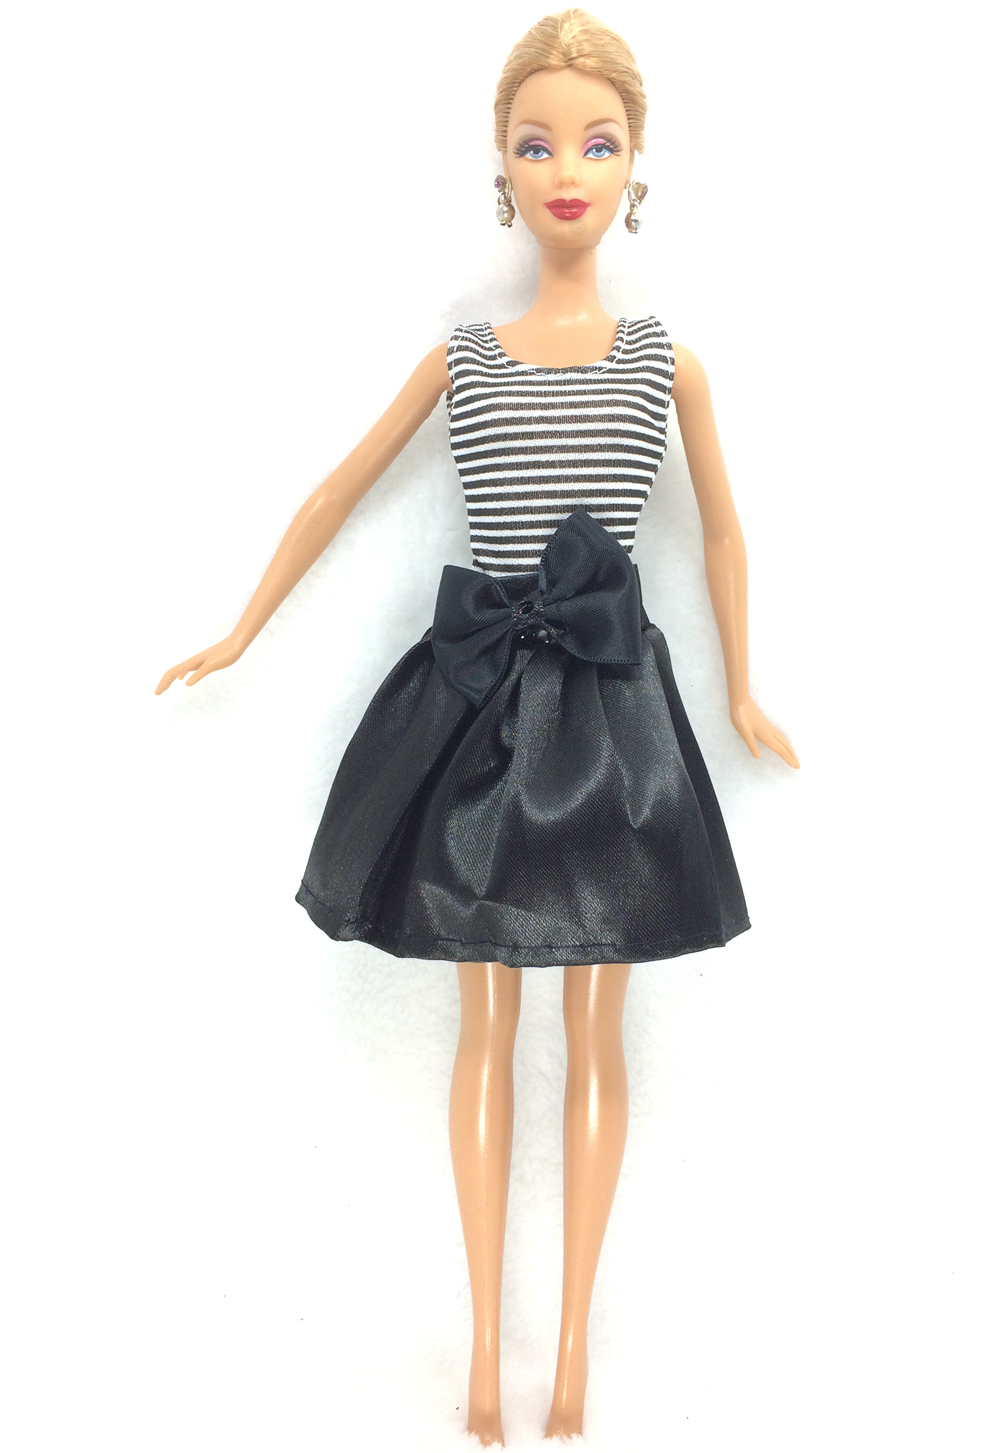 NK 2018 Newest Doll Dress Beautiful Handmade Party ClothesTop Fashion Dress For Barbie Noble